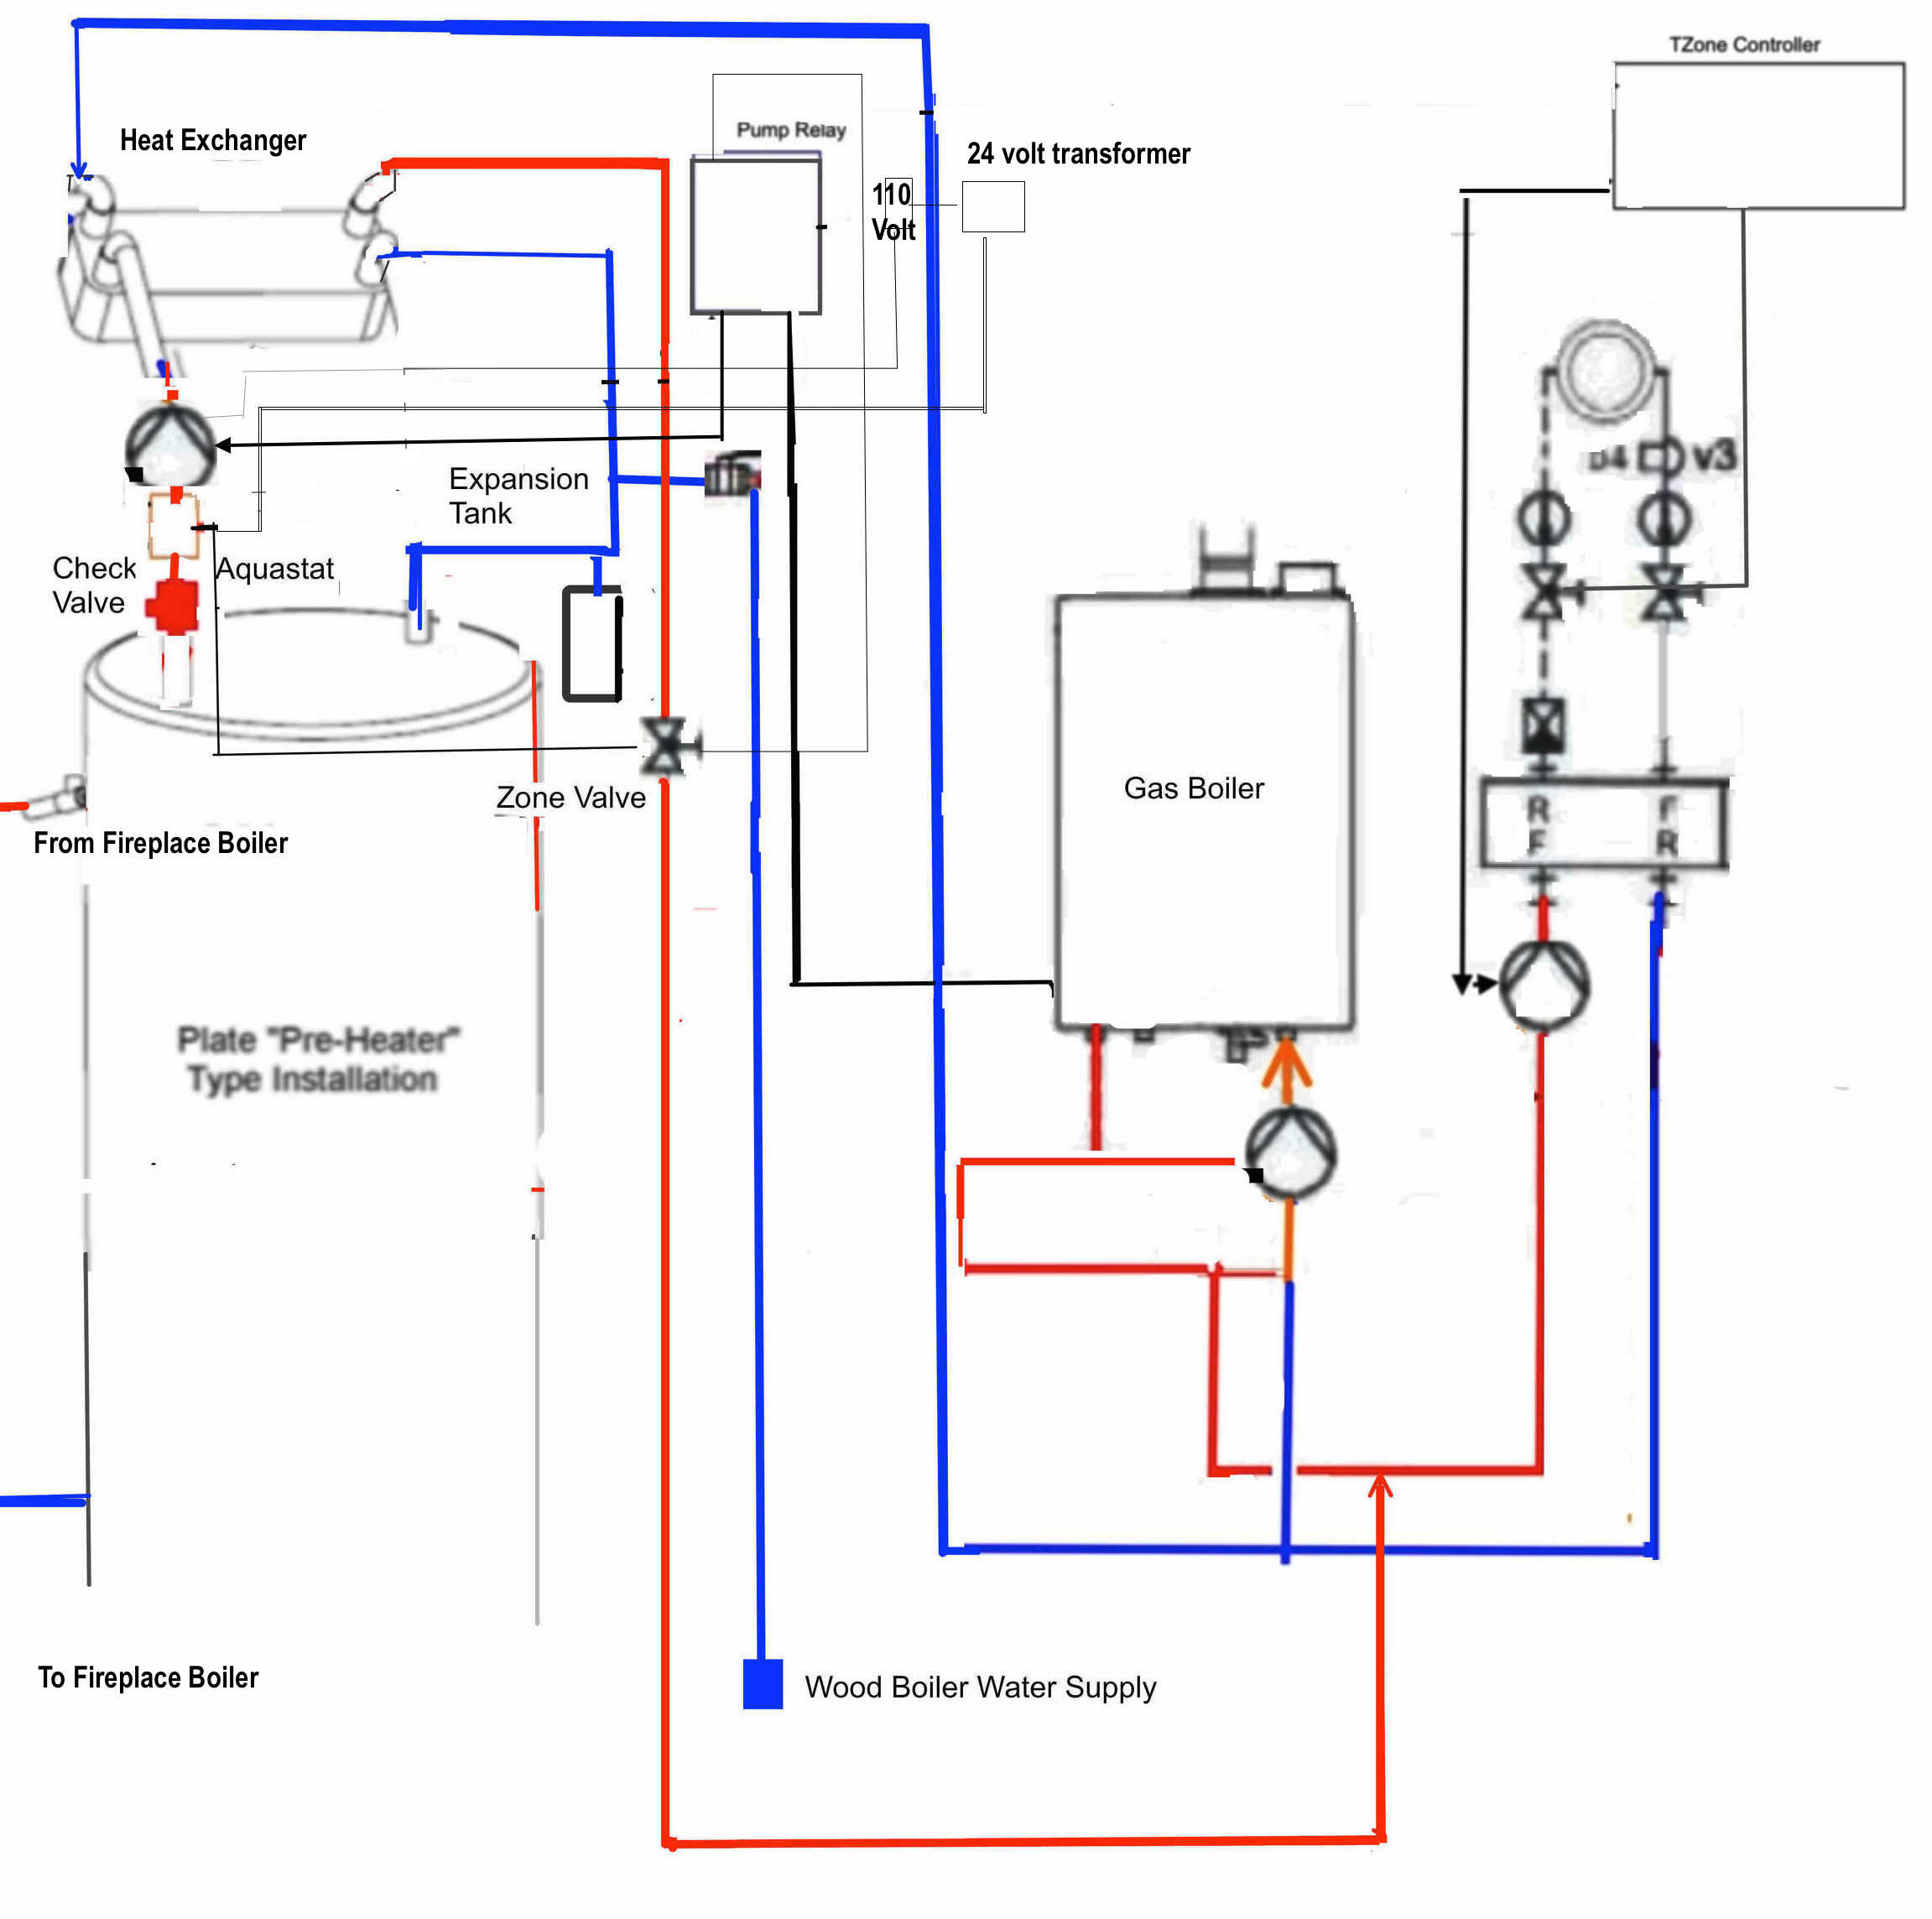 Sensational Grundfos Aquastat Wiring Diagram Basic Electronics Wiring Diagram Wiring Cloud Favobieswglorg